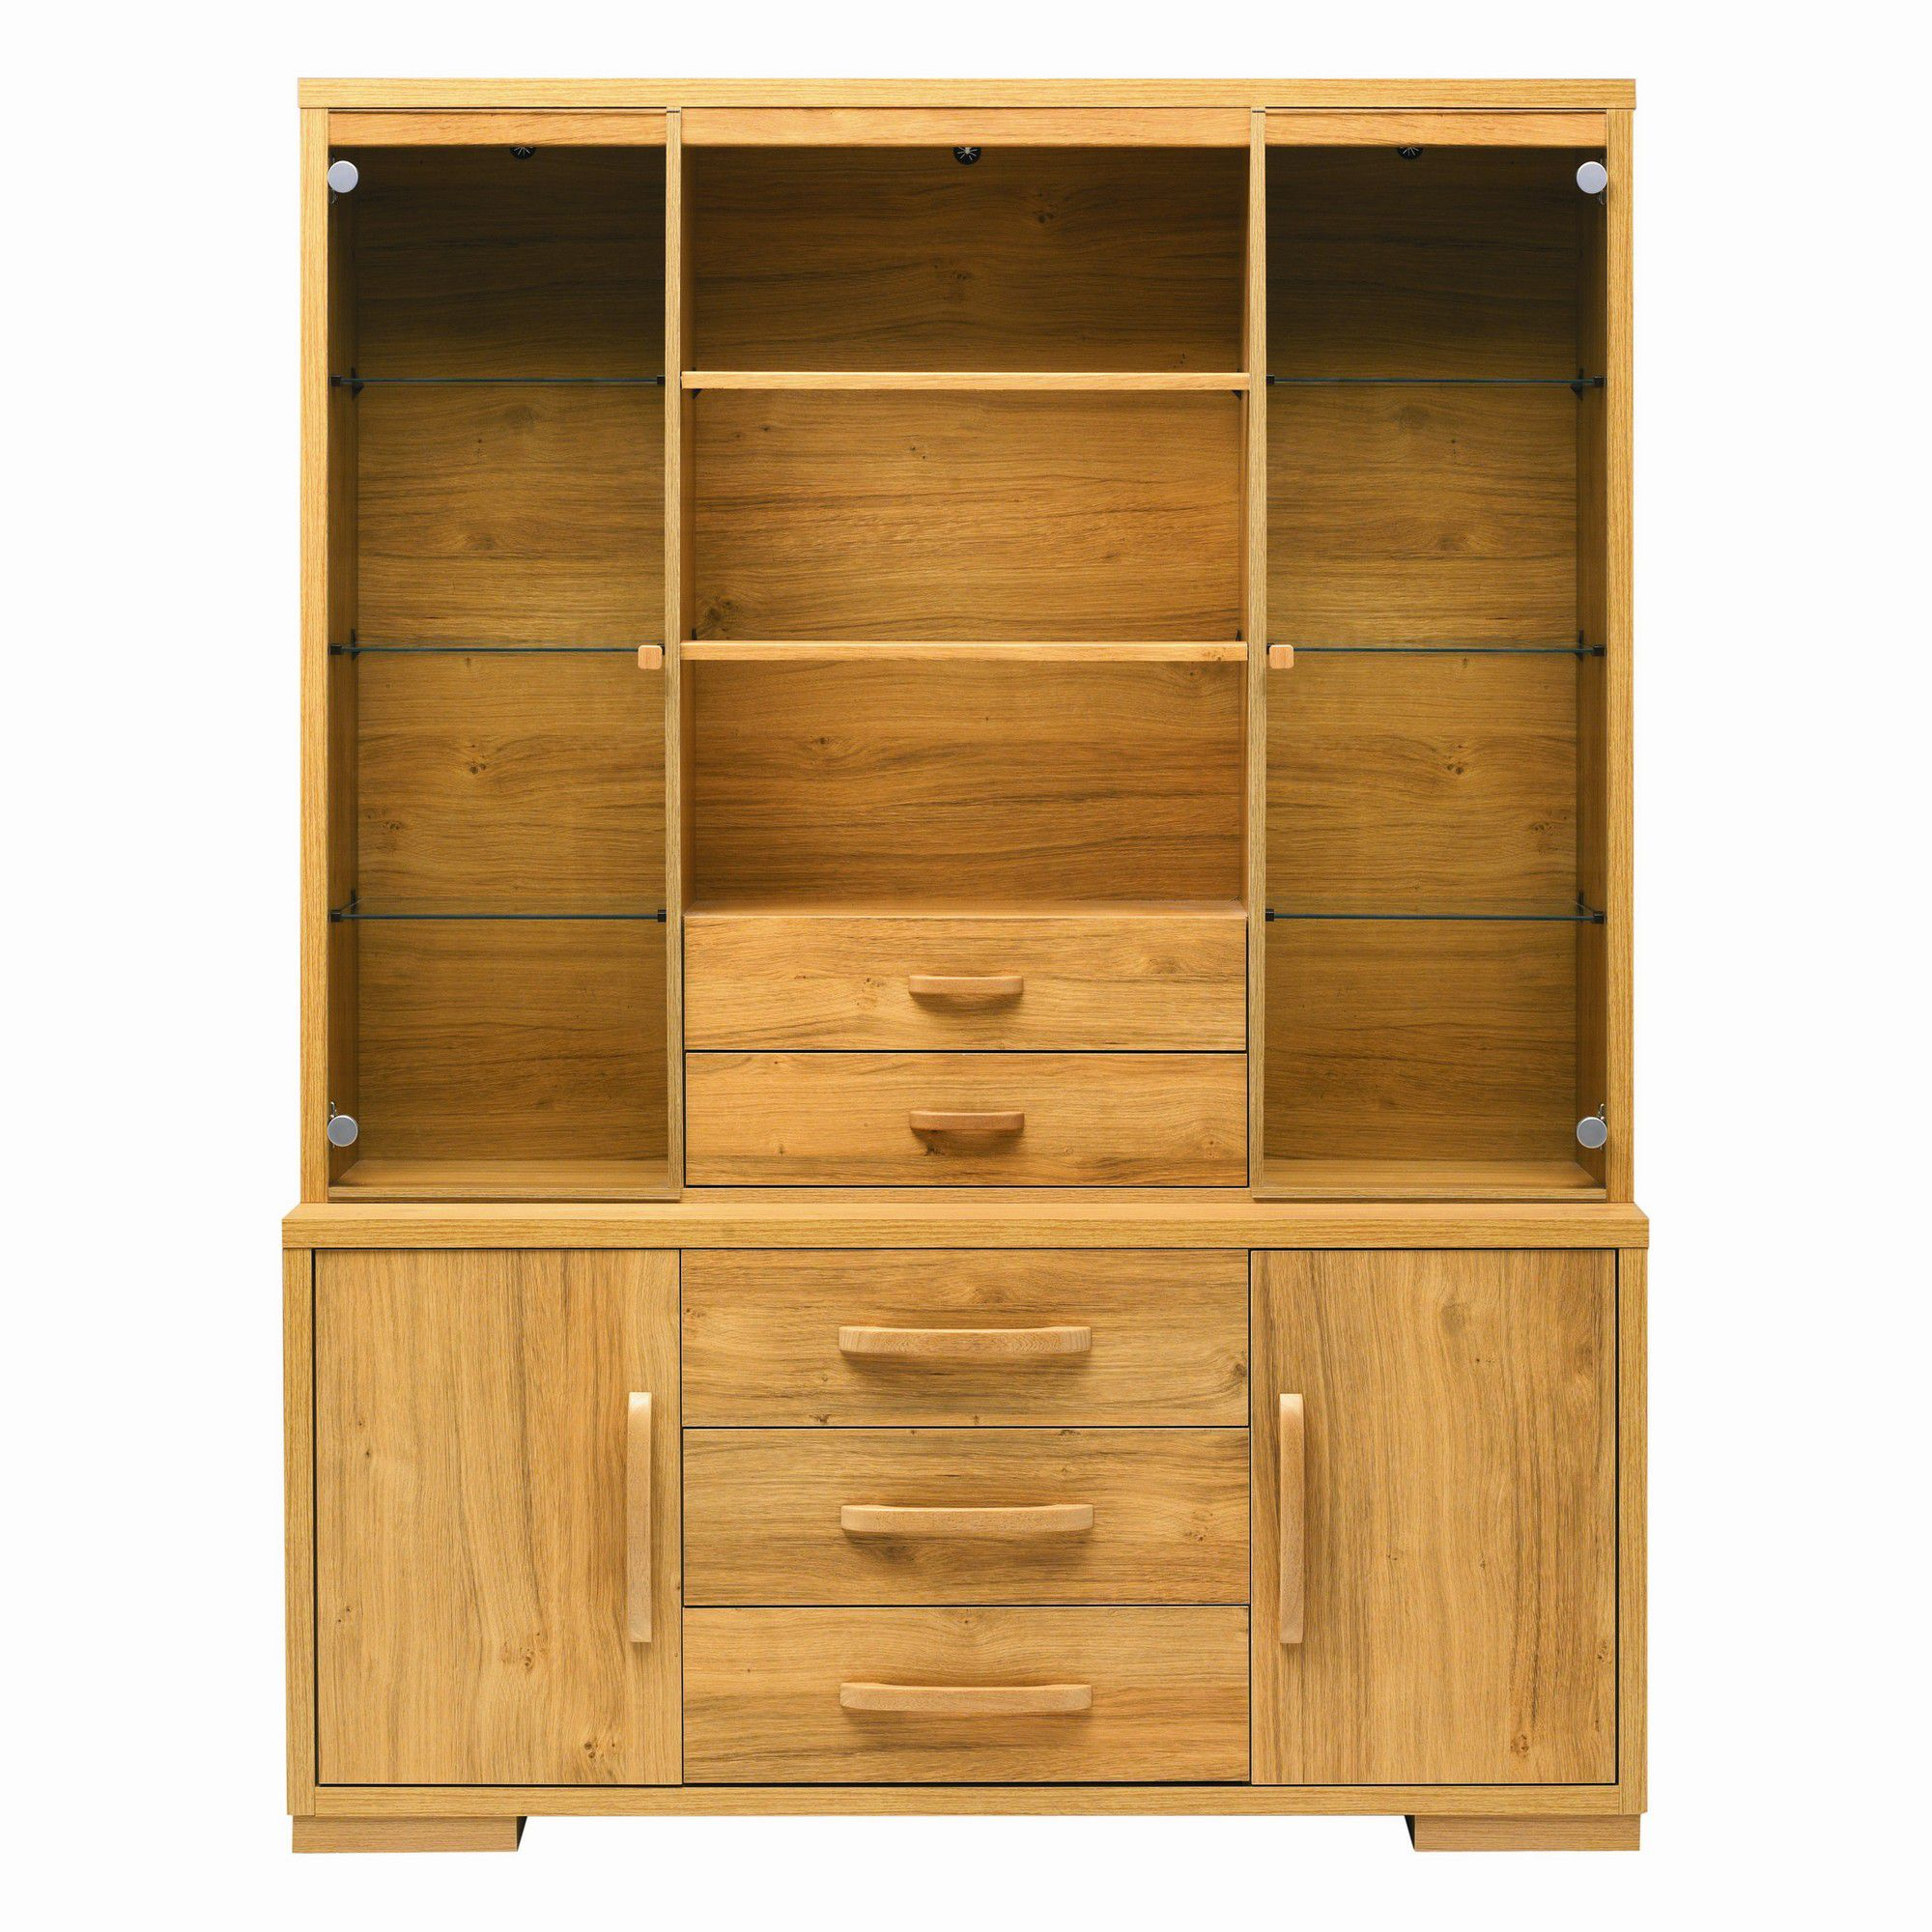 Caxton Strand Open Display Cabinet in Oak at Tescos Direct